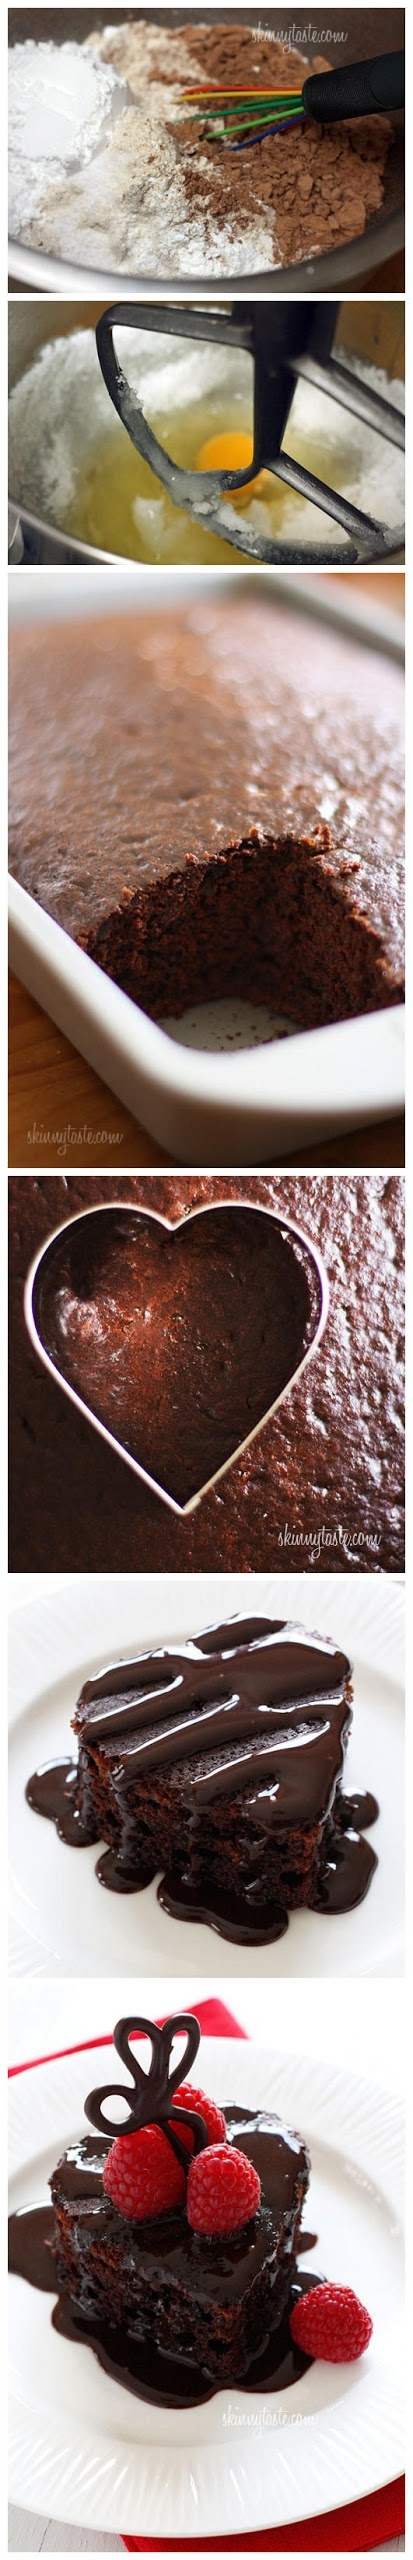 Homemade Skinny Chocolate Cake | Favorite Food Bloggers! | Pinterest